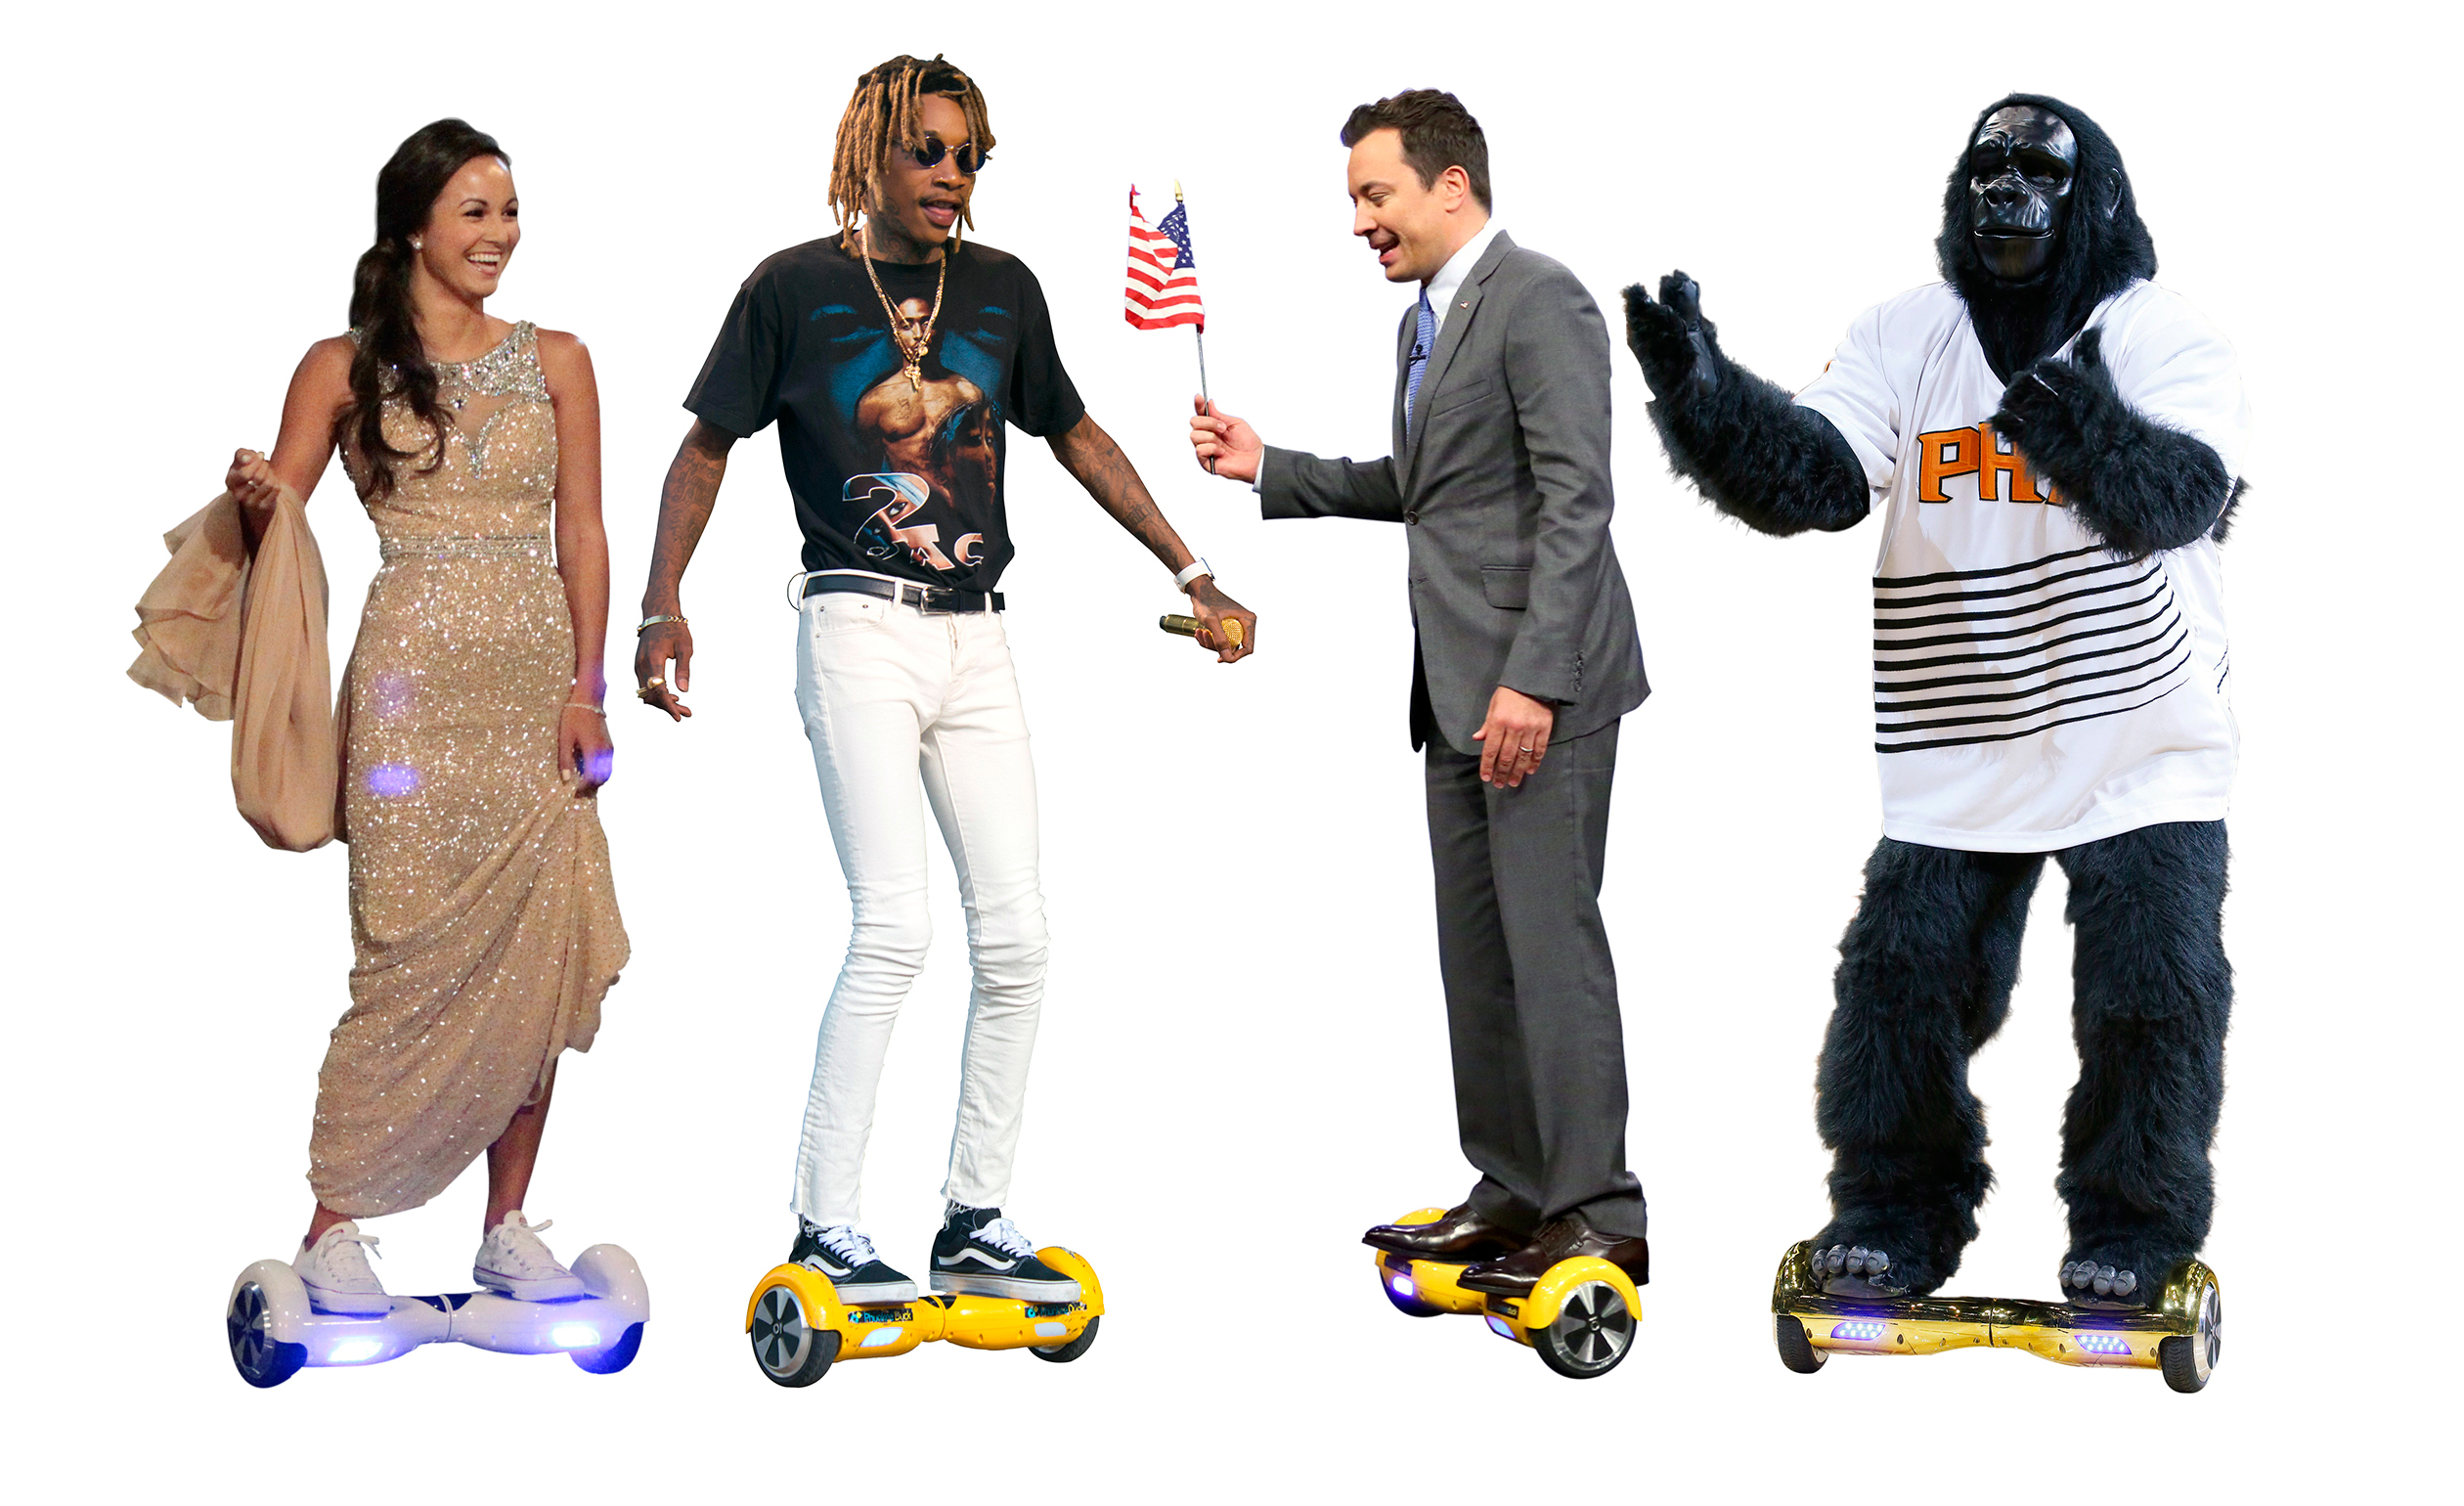 """Hoverboard riders include, from left: a contestant on """"The Bachelor"""", Wiz Khalifa, Jimmy Fallon and the Phoenix Sun's mascot """"The Gorilla."""""""